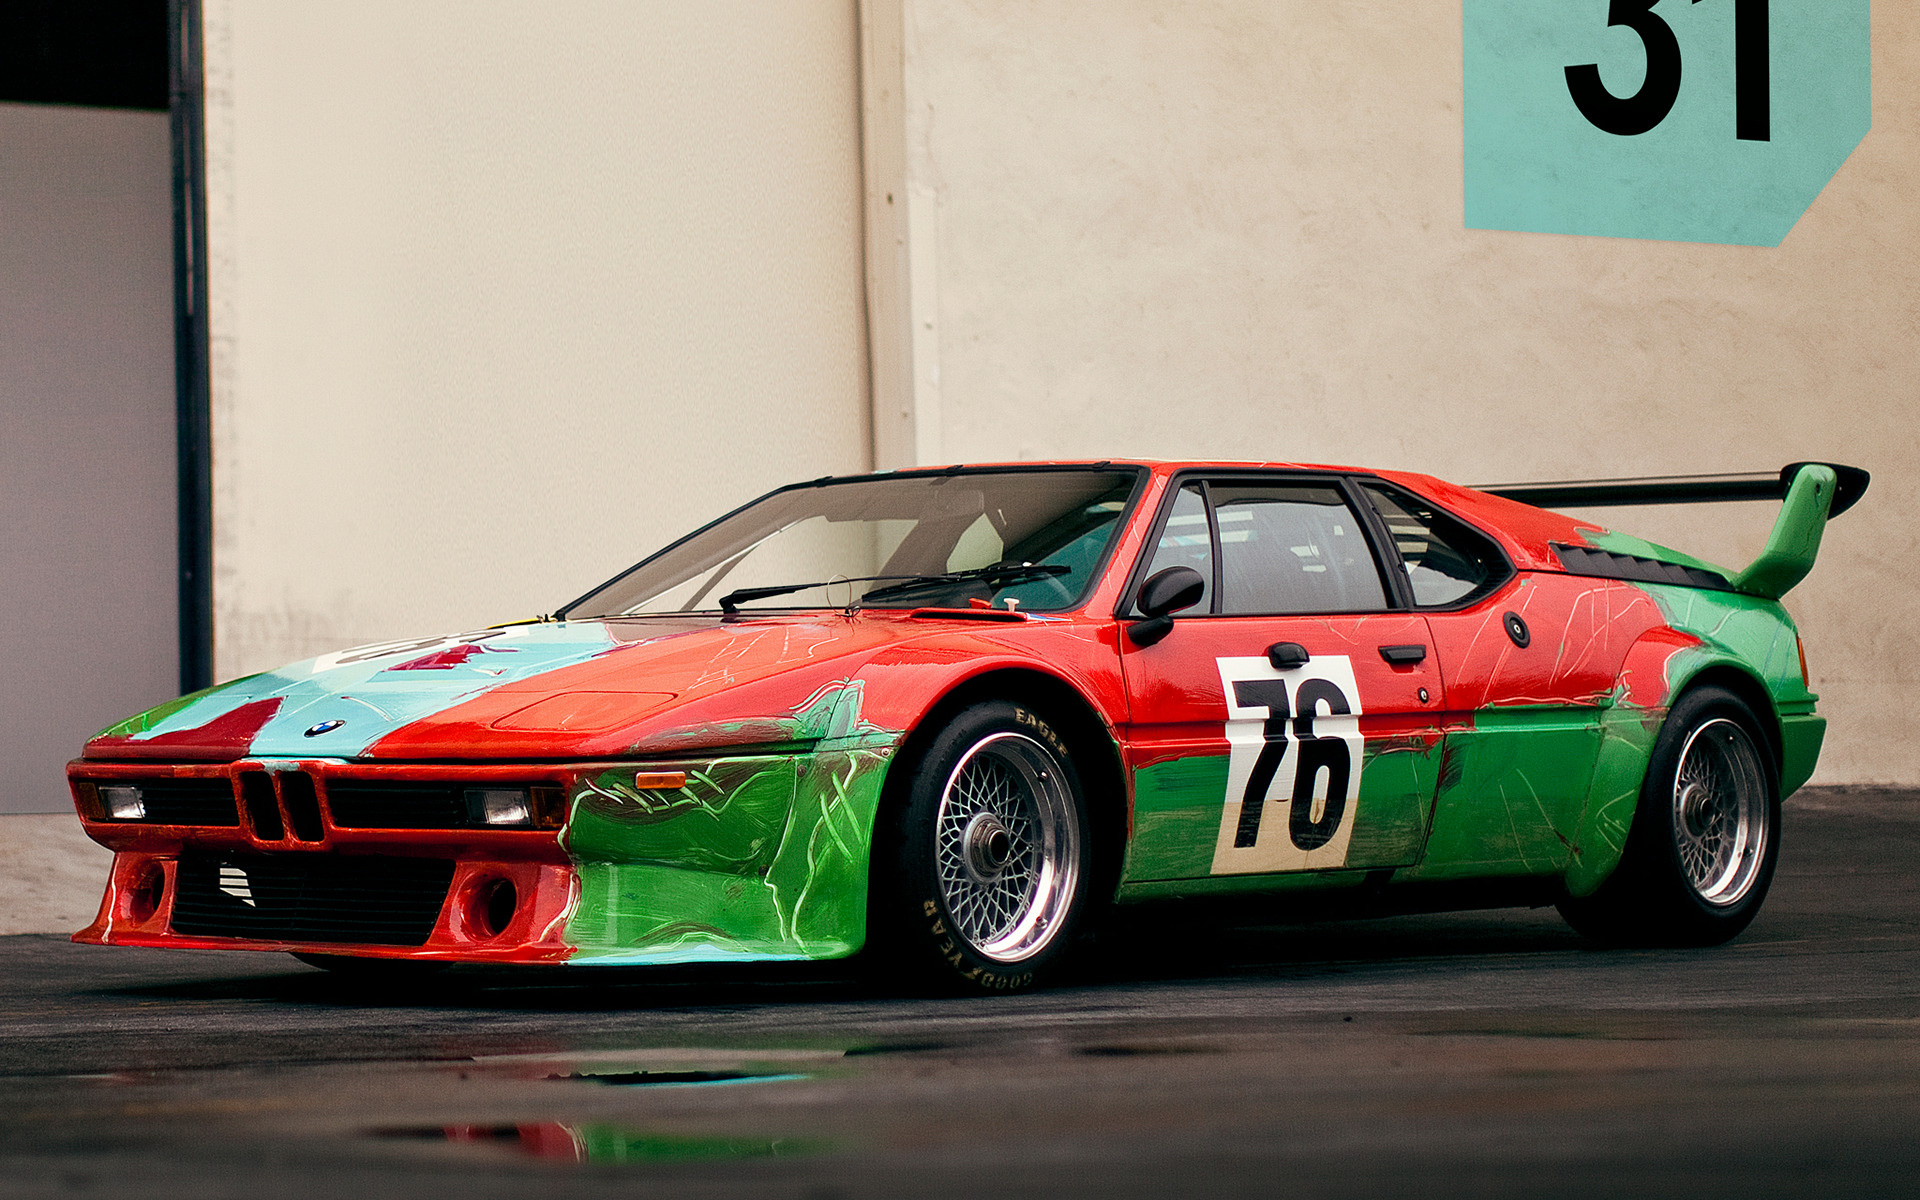 Bmw M1 Group 4 Art Car By Andy Warhol 1979 Wallpapers